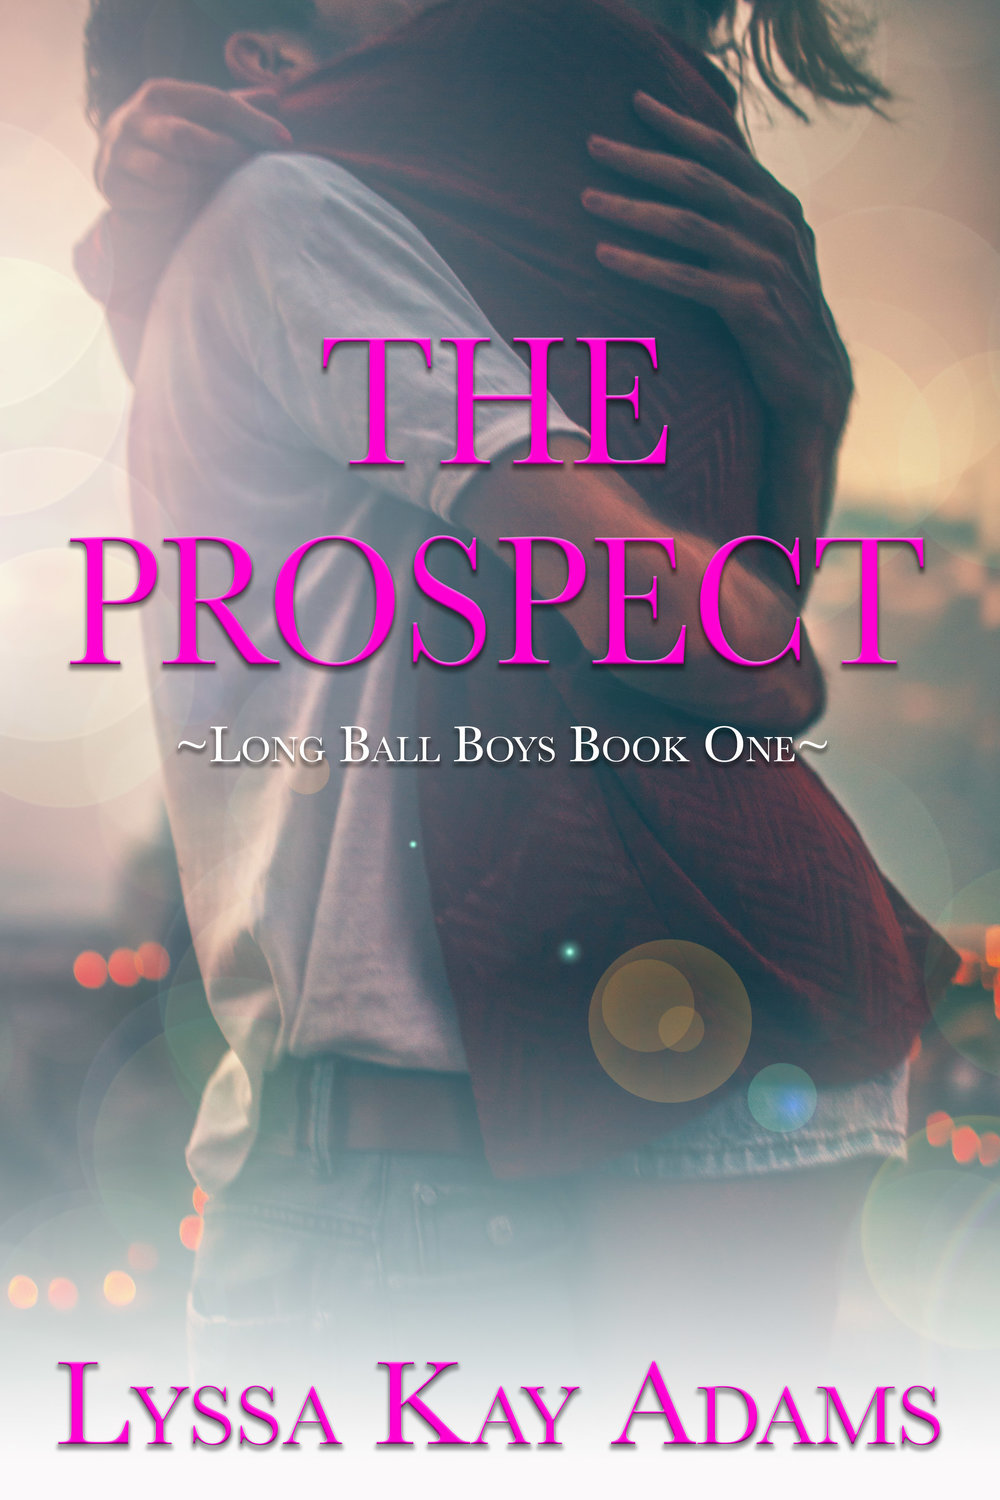 LKA The Prospect eBook v2 FINAL.jpg